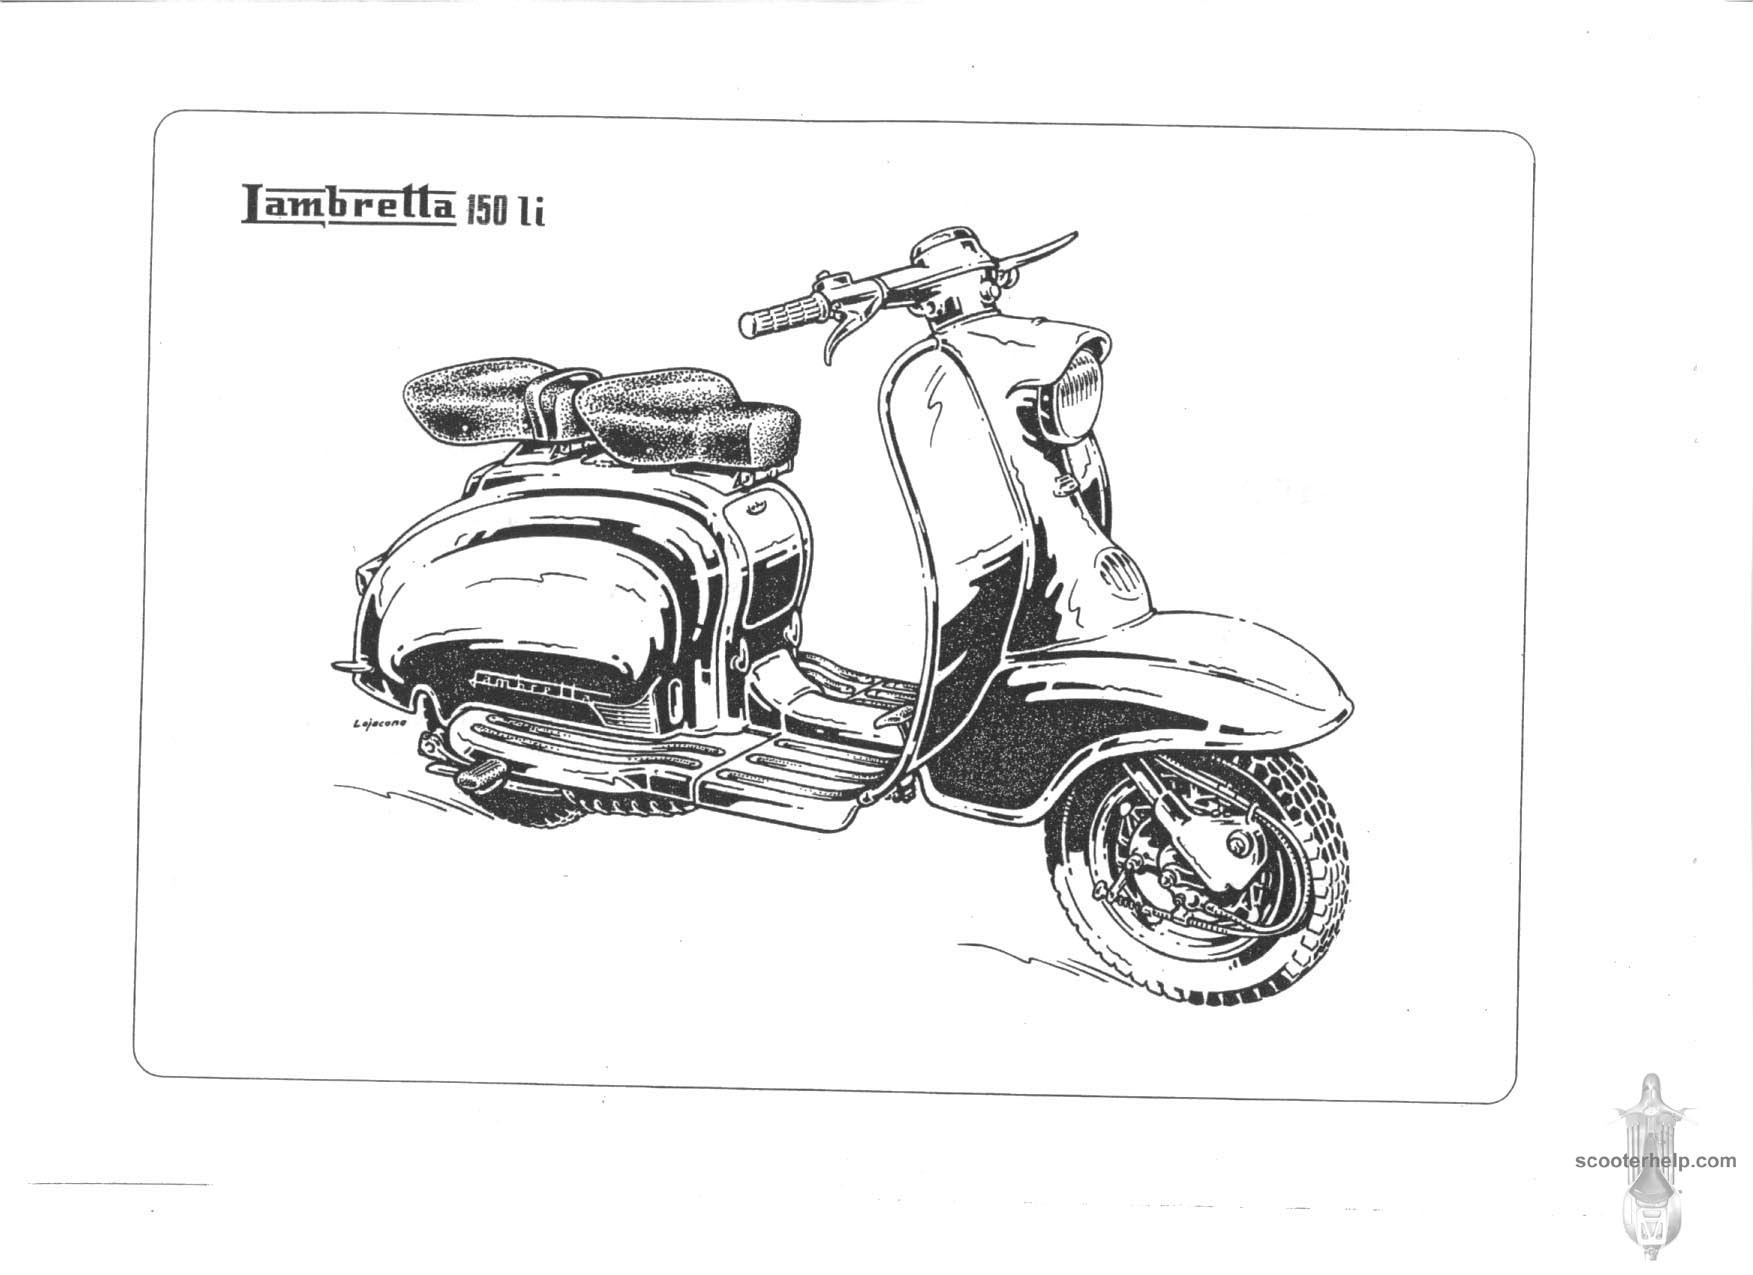 Lambretta Li150 Series I Parts Book Scooter Wiring Diagram 100 If You Prefer A Slightly Lower Resolution Dpipdf File Of All The Pages Click Here For Single 74mb Download Entire